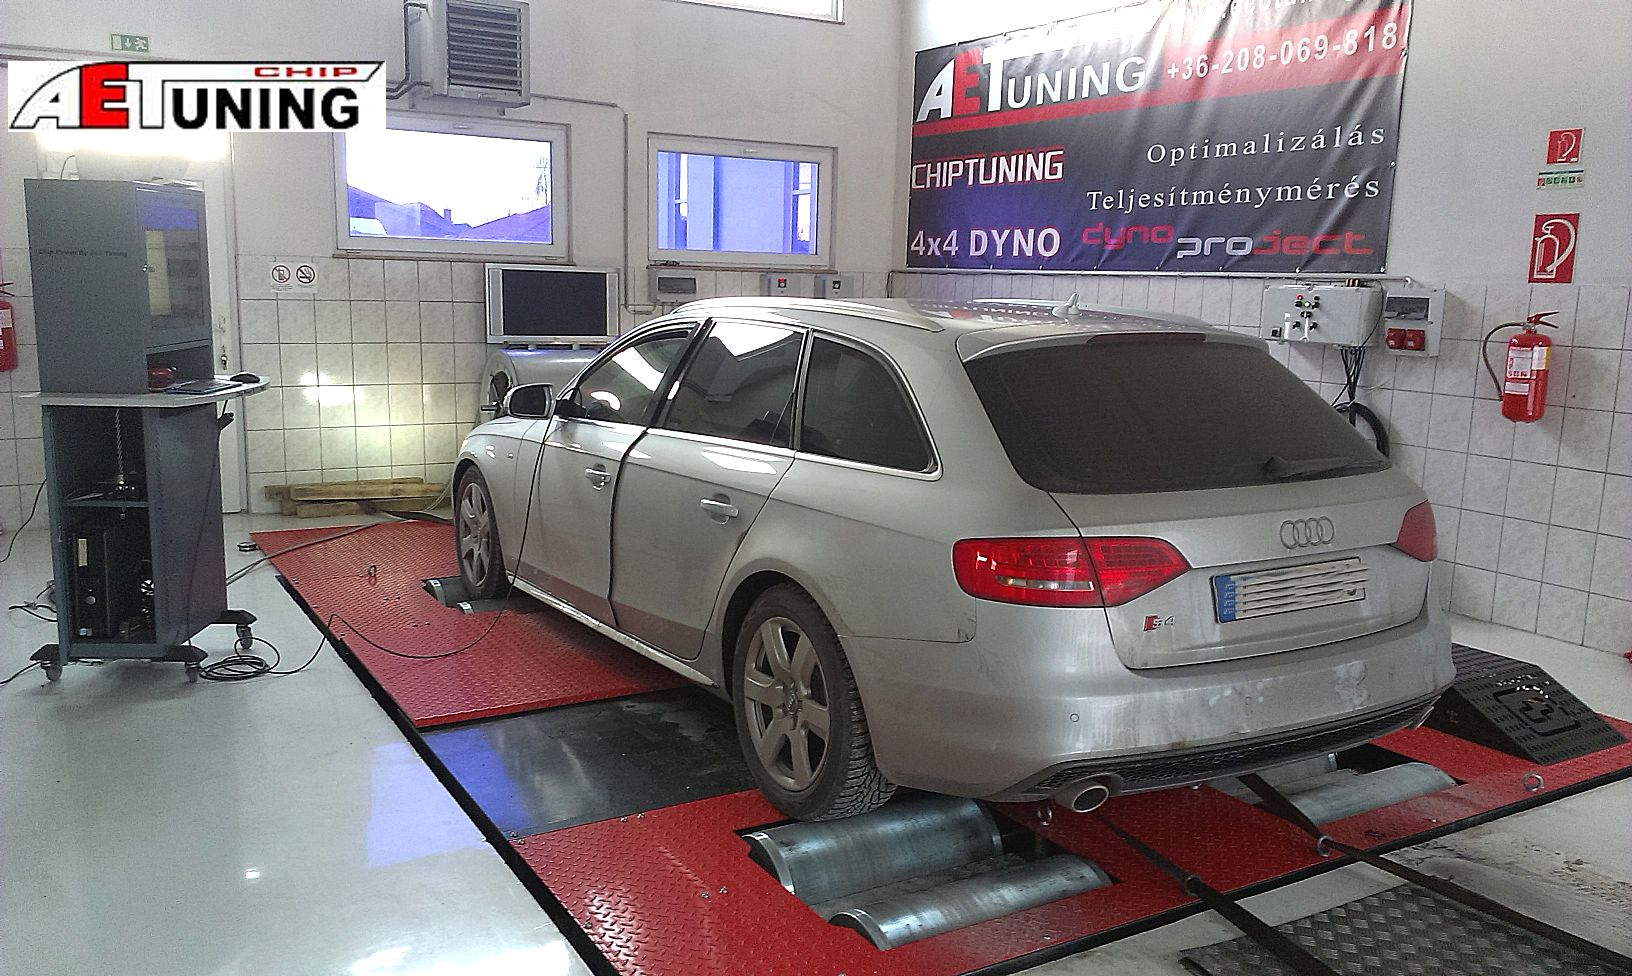 audi_a4_2-7tdi_multitronic_chiptuning